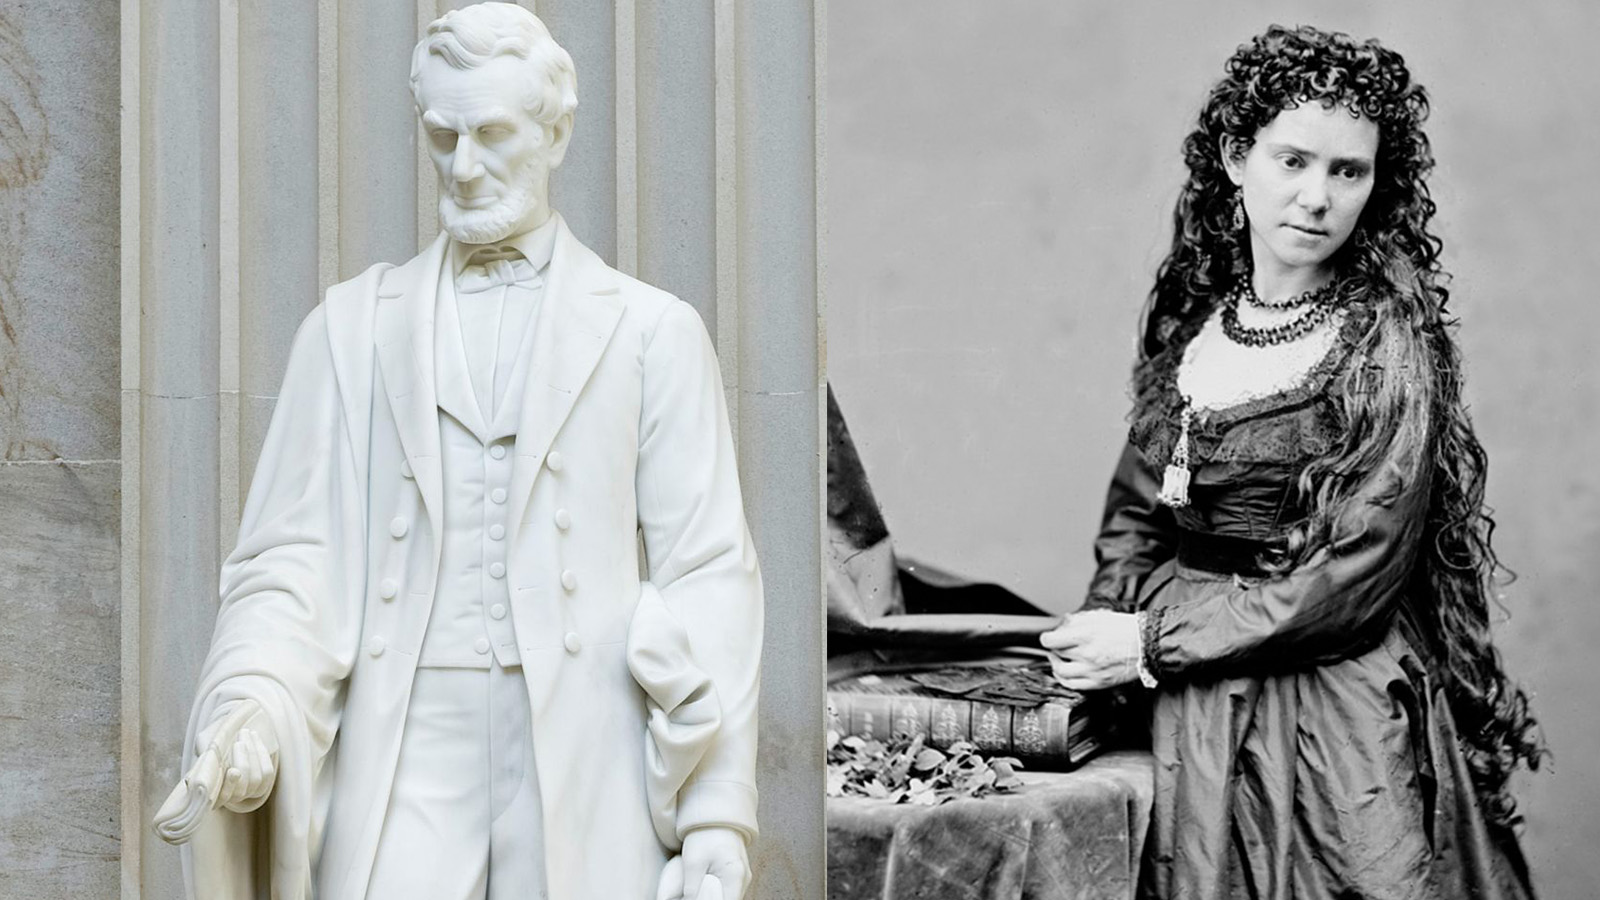 Sculptor Vinnie Ream, right, and her statue of Lincoln that stands in the U.S. Capitol.